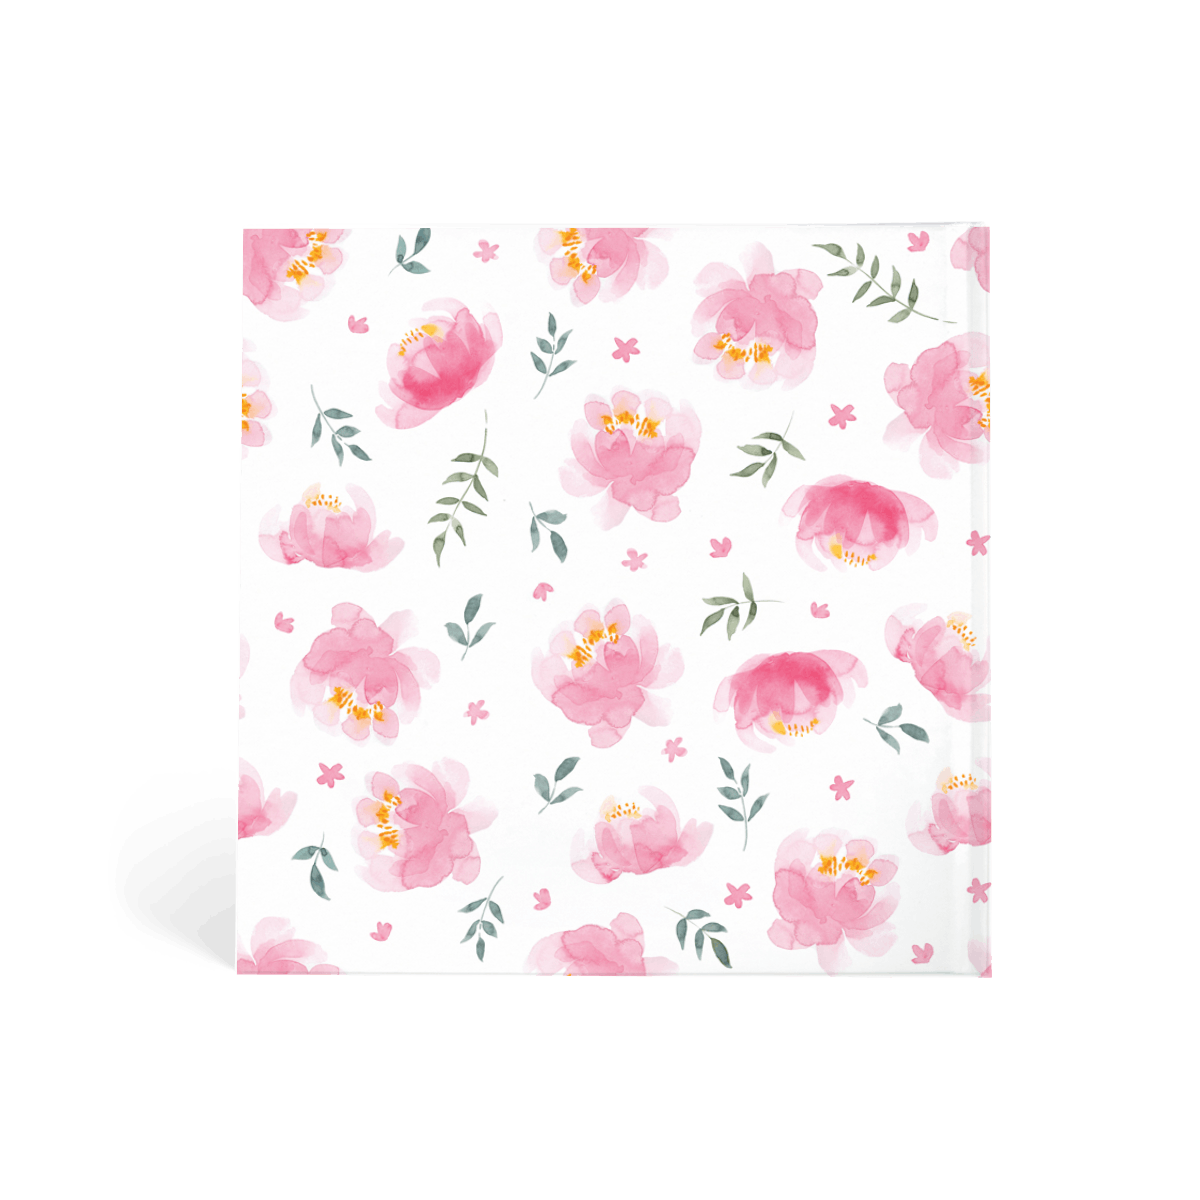 Https%3a%2f%2fwww.papier.com%2fproduct image%2f42385%2f24%2fpeonies 10846 back 1533117385.png?ixlib=rb 1.1